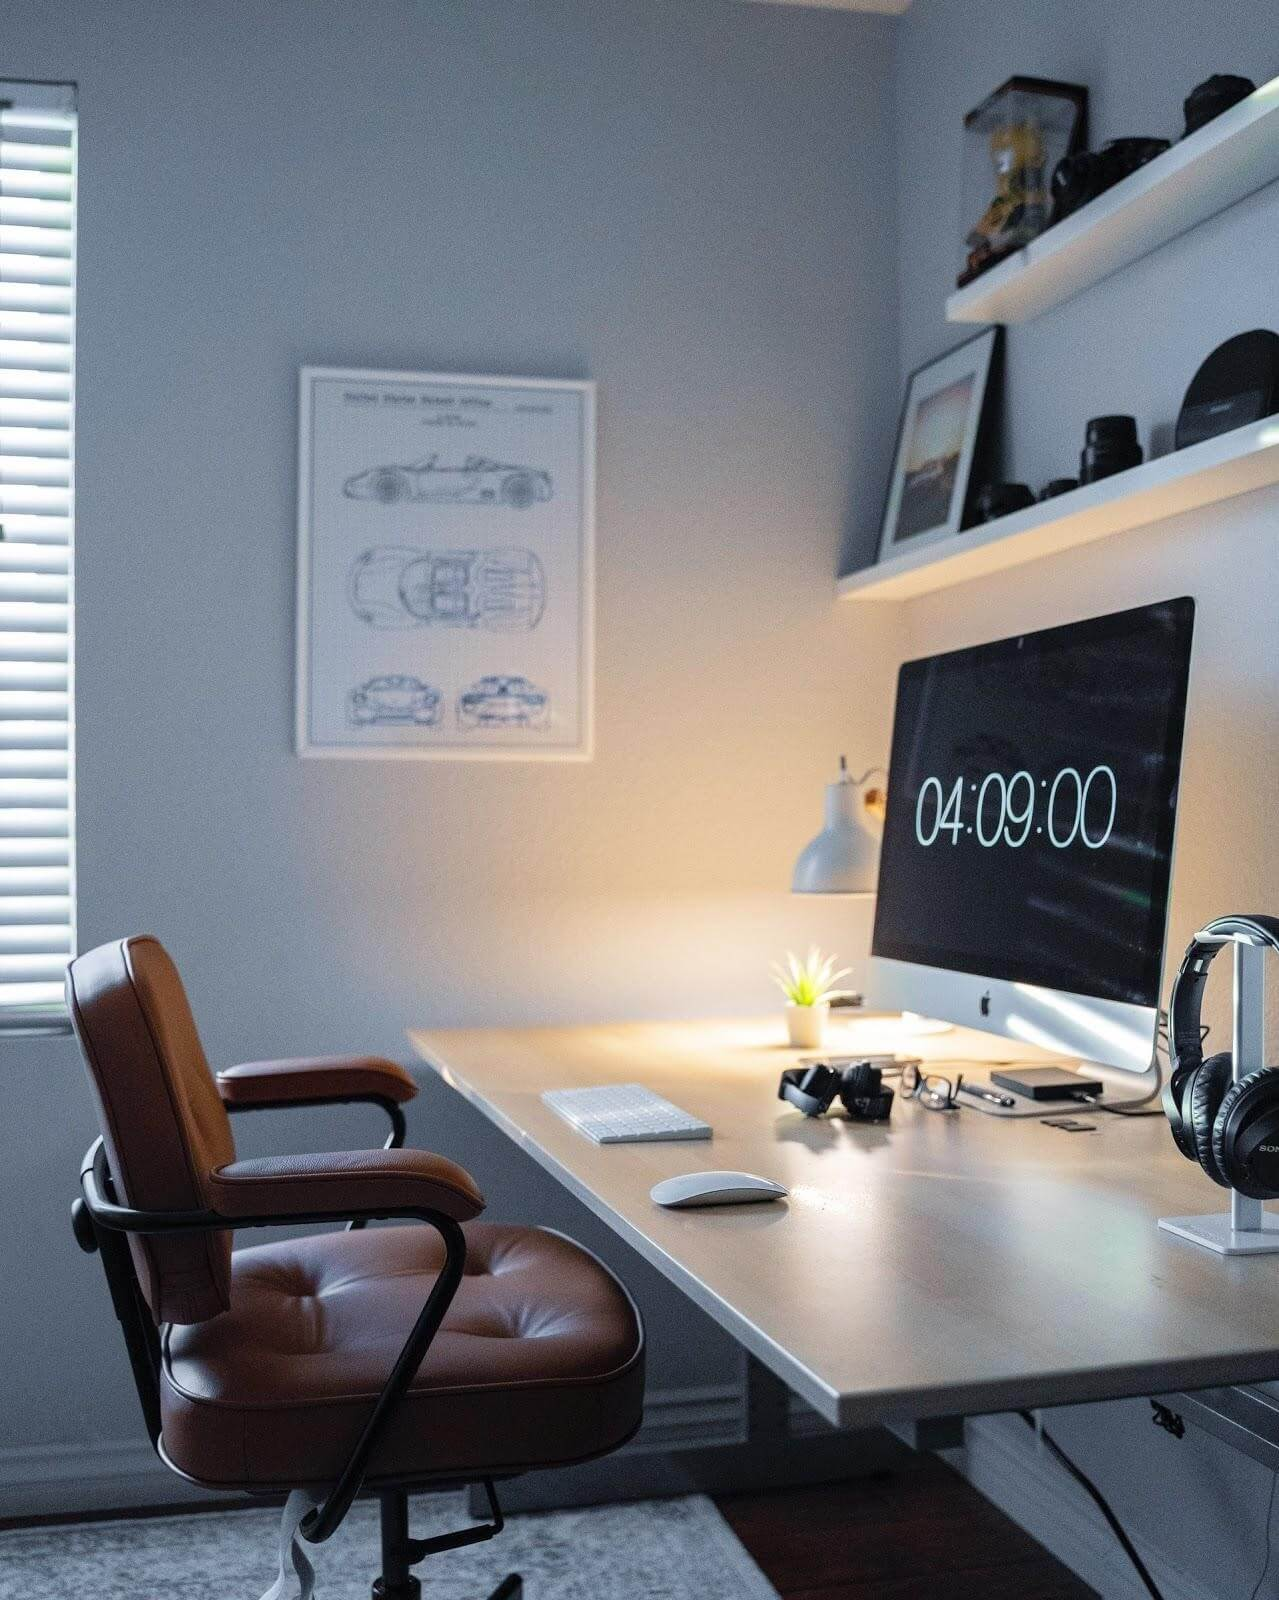 Home office picture - Abondant light and clean desk help getting work done